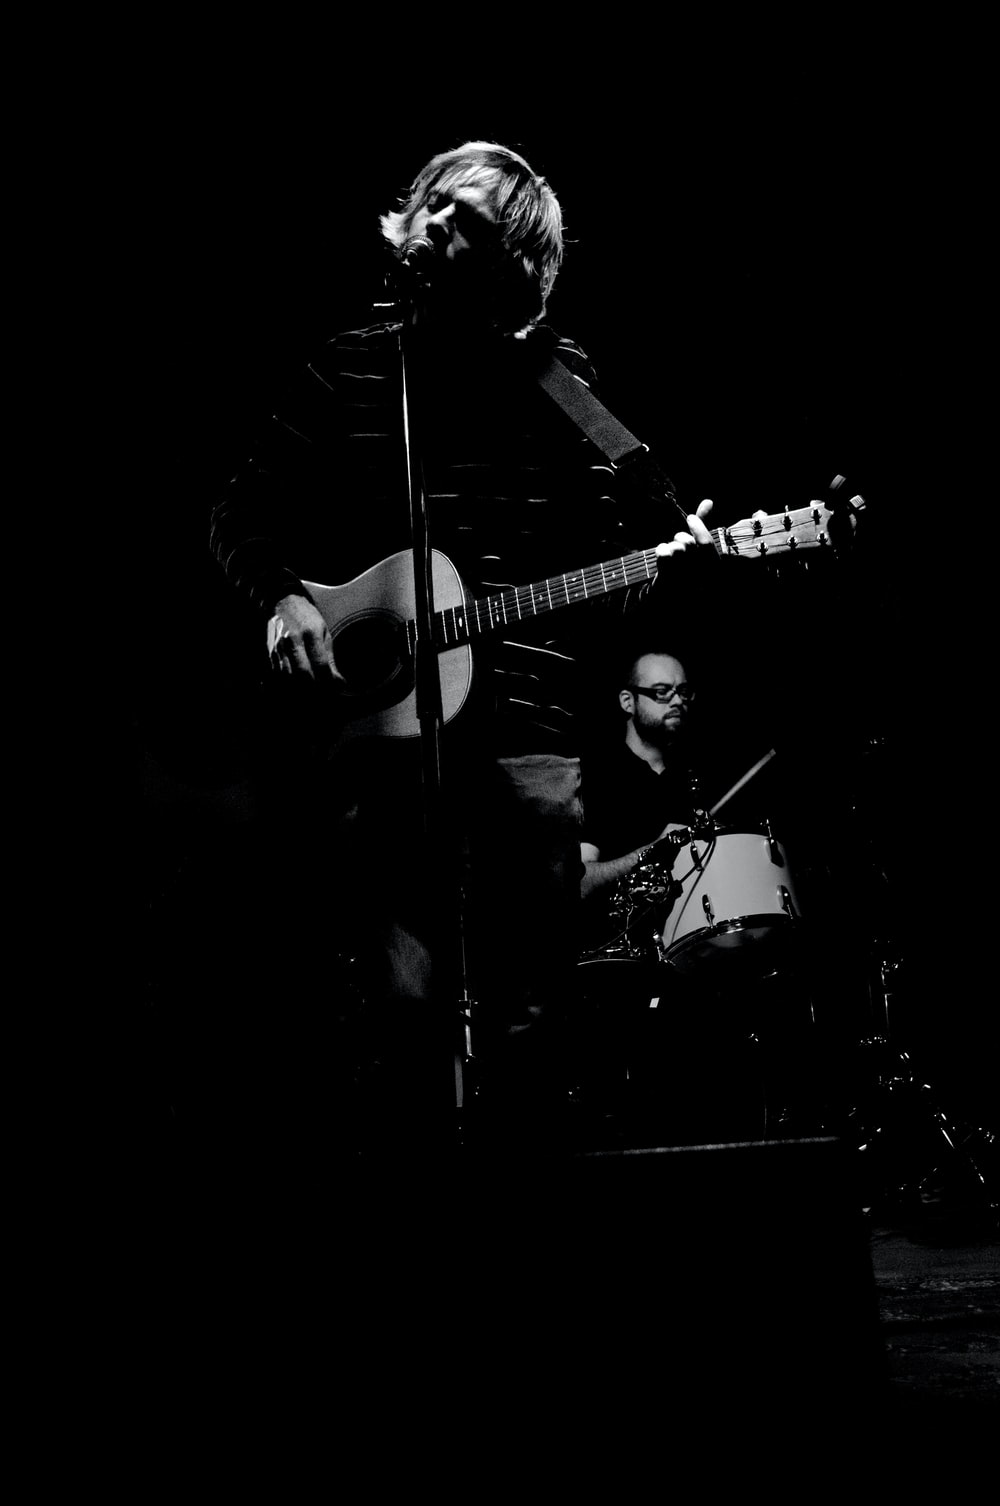 person performing in greyscale photography